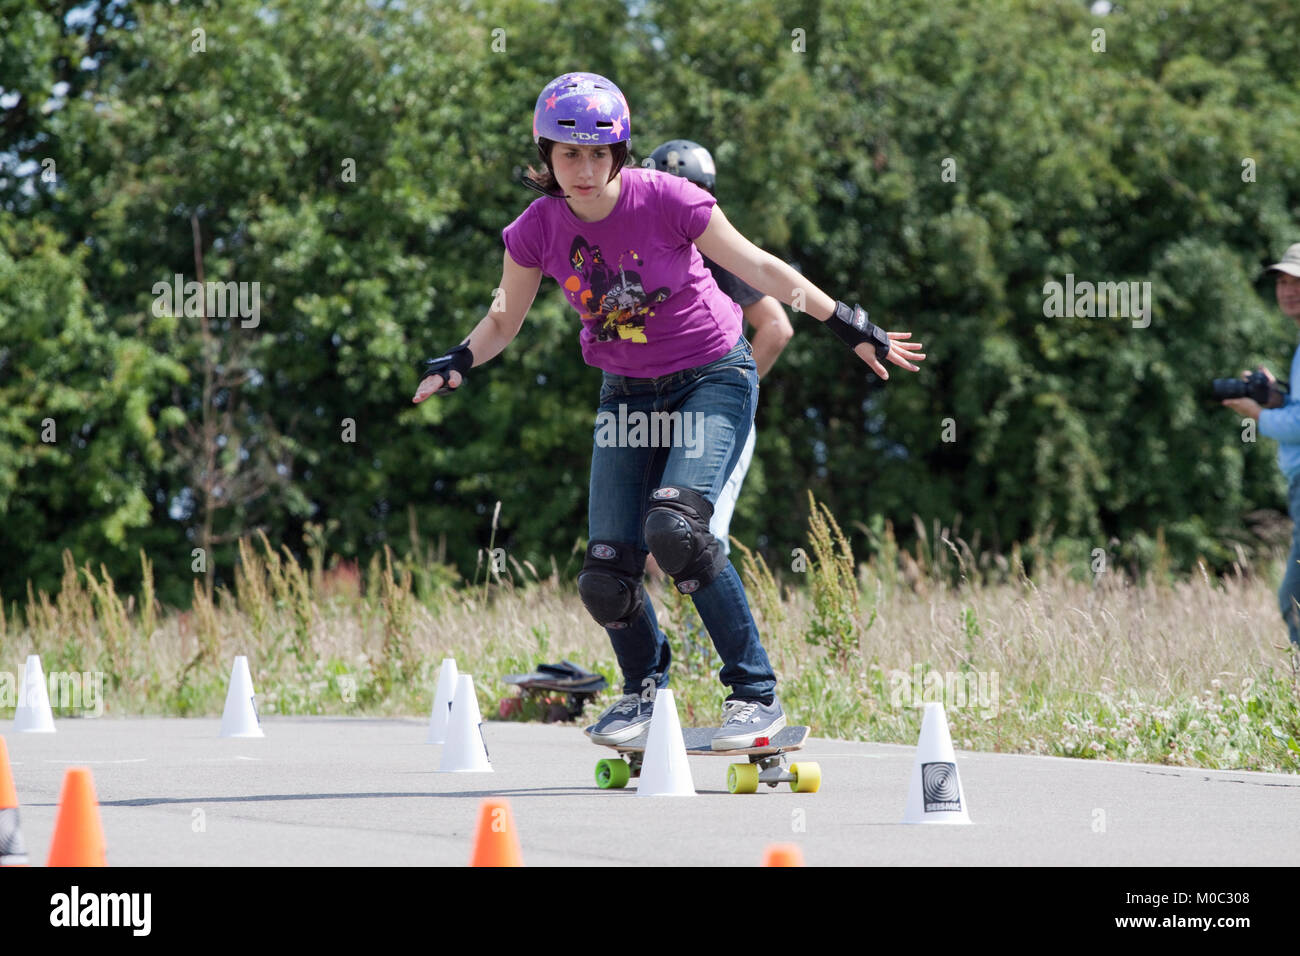 Woman skateboarder competing in a slalom - Stock Image